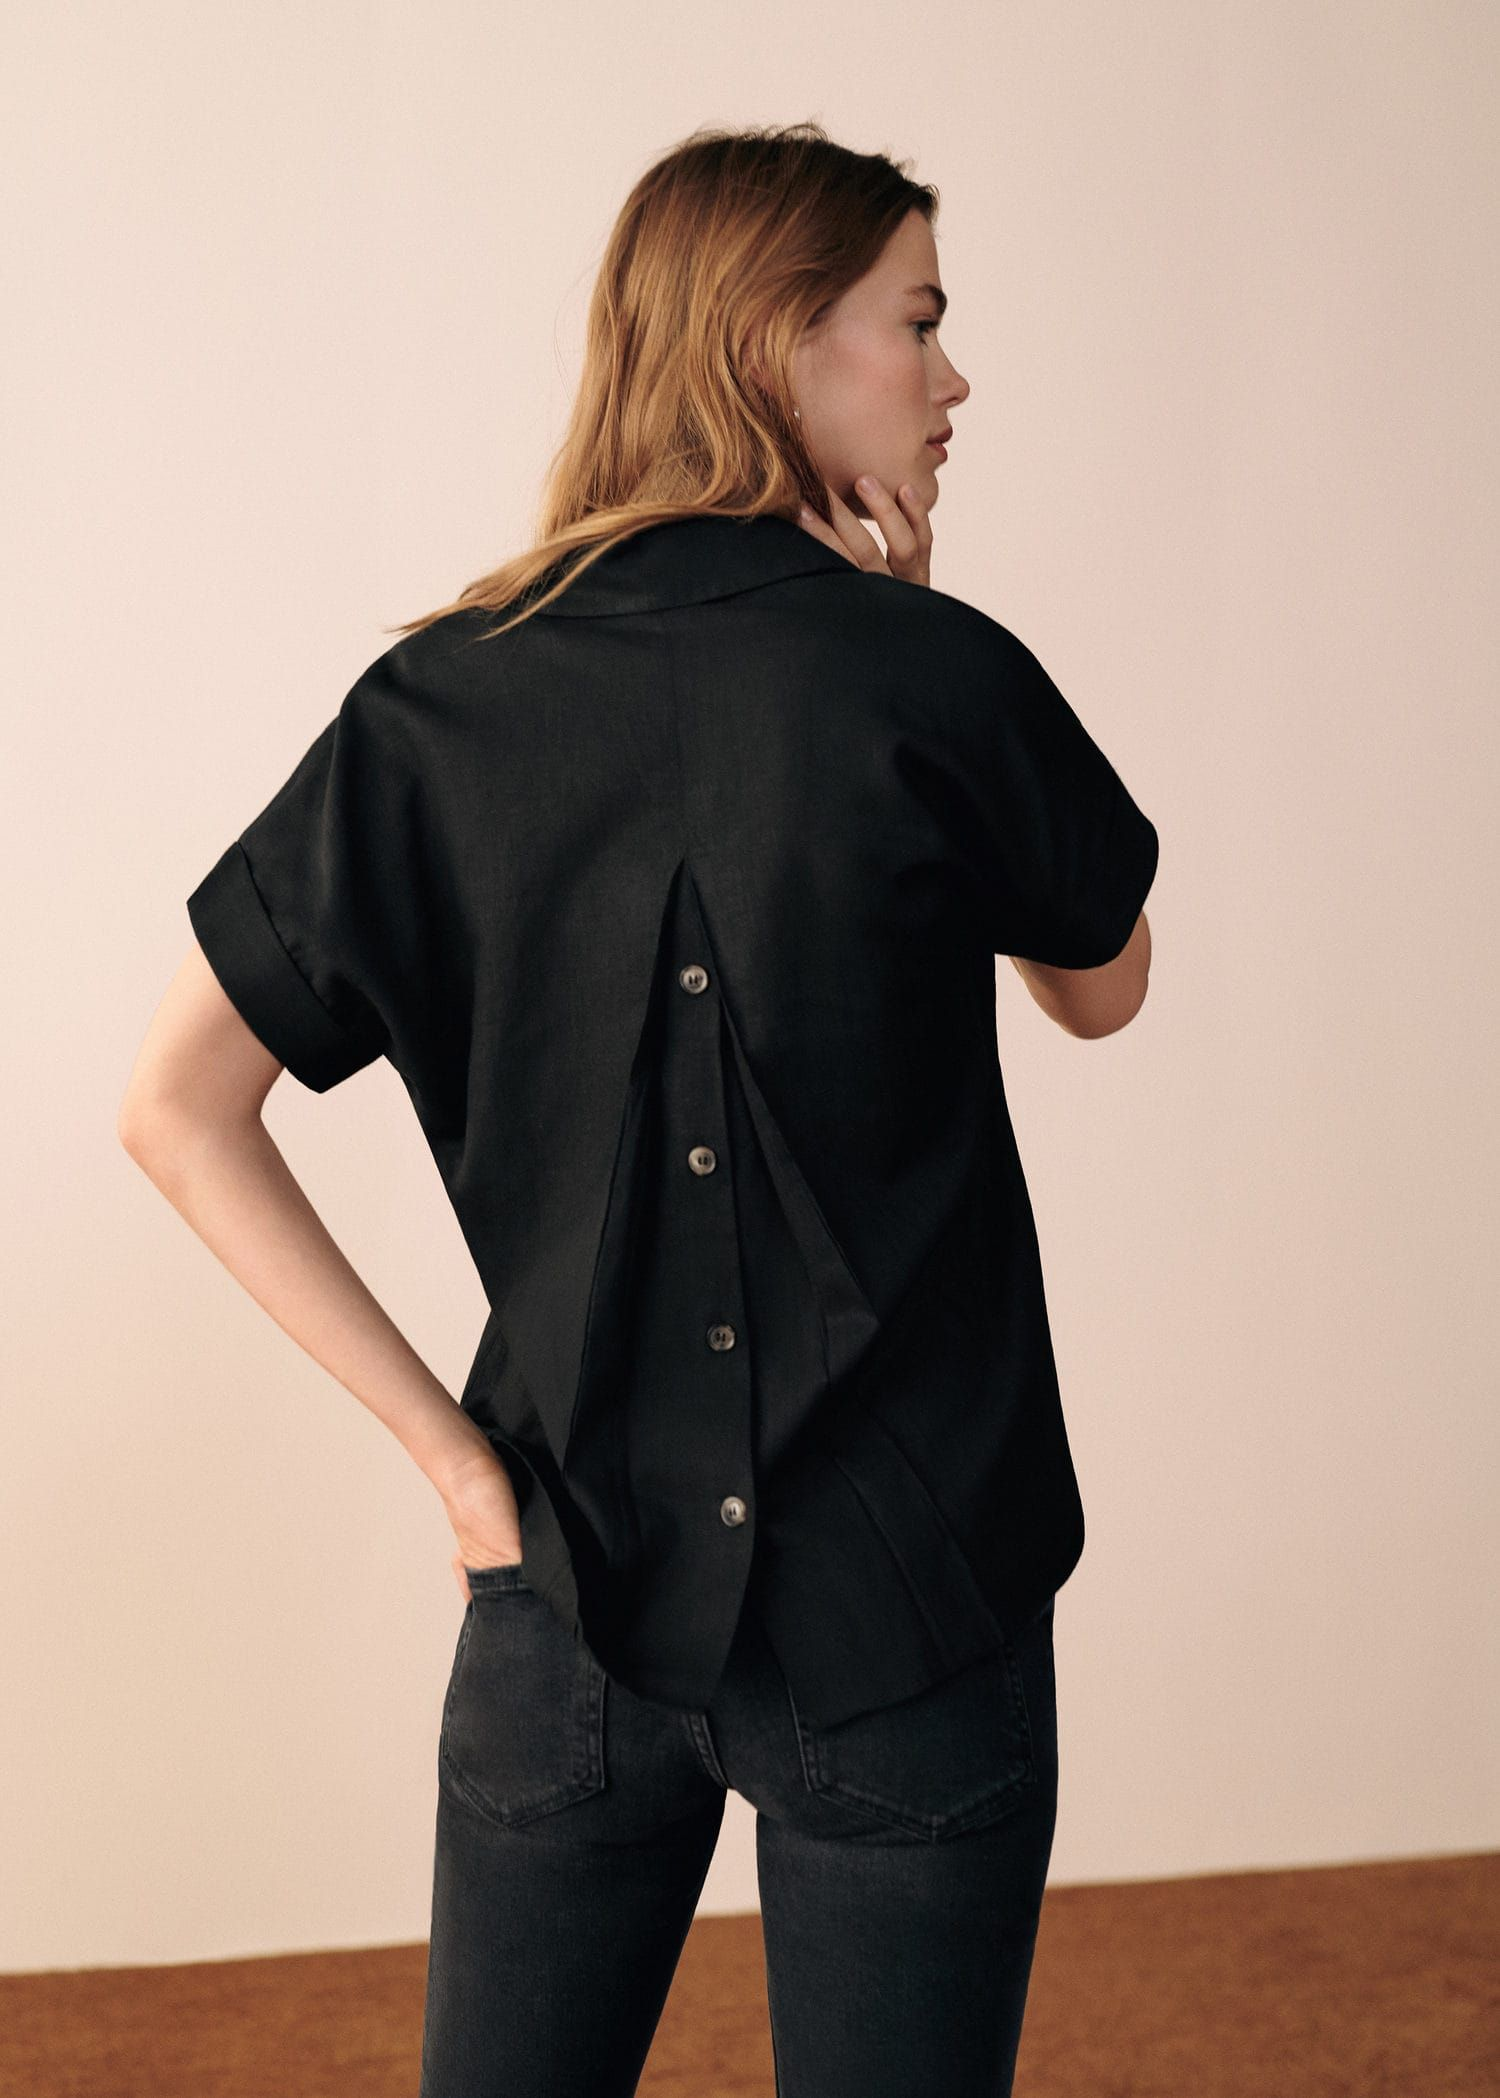 ffdaa40577a Short sleeve linen-blend shirt - Women in 2019 | Wear | Pinterest ...